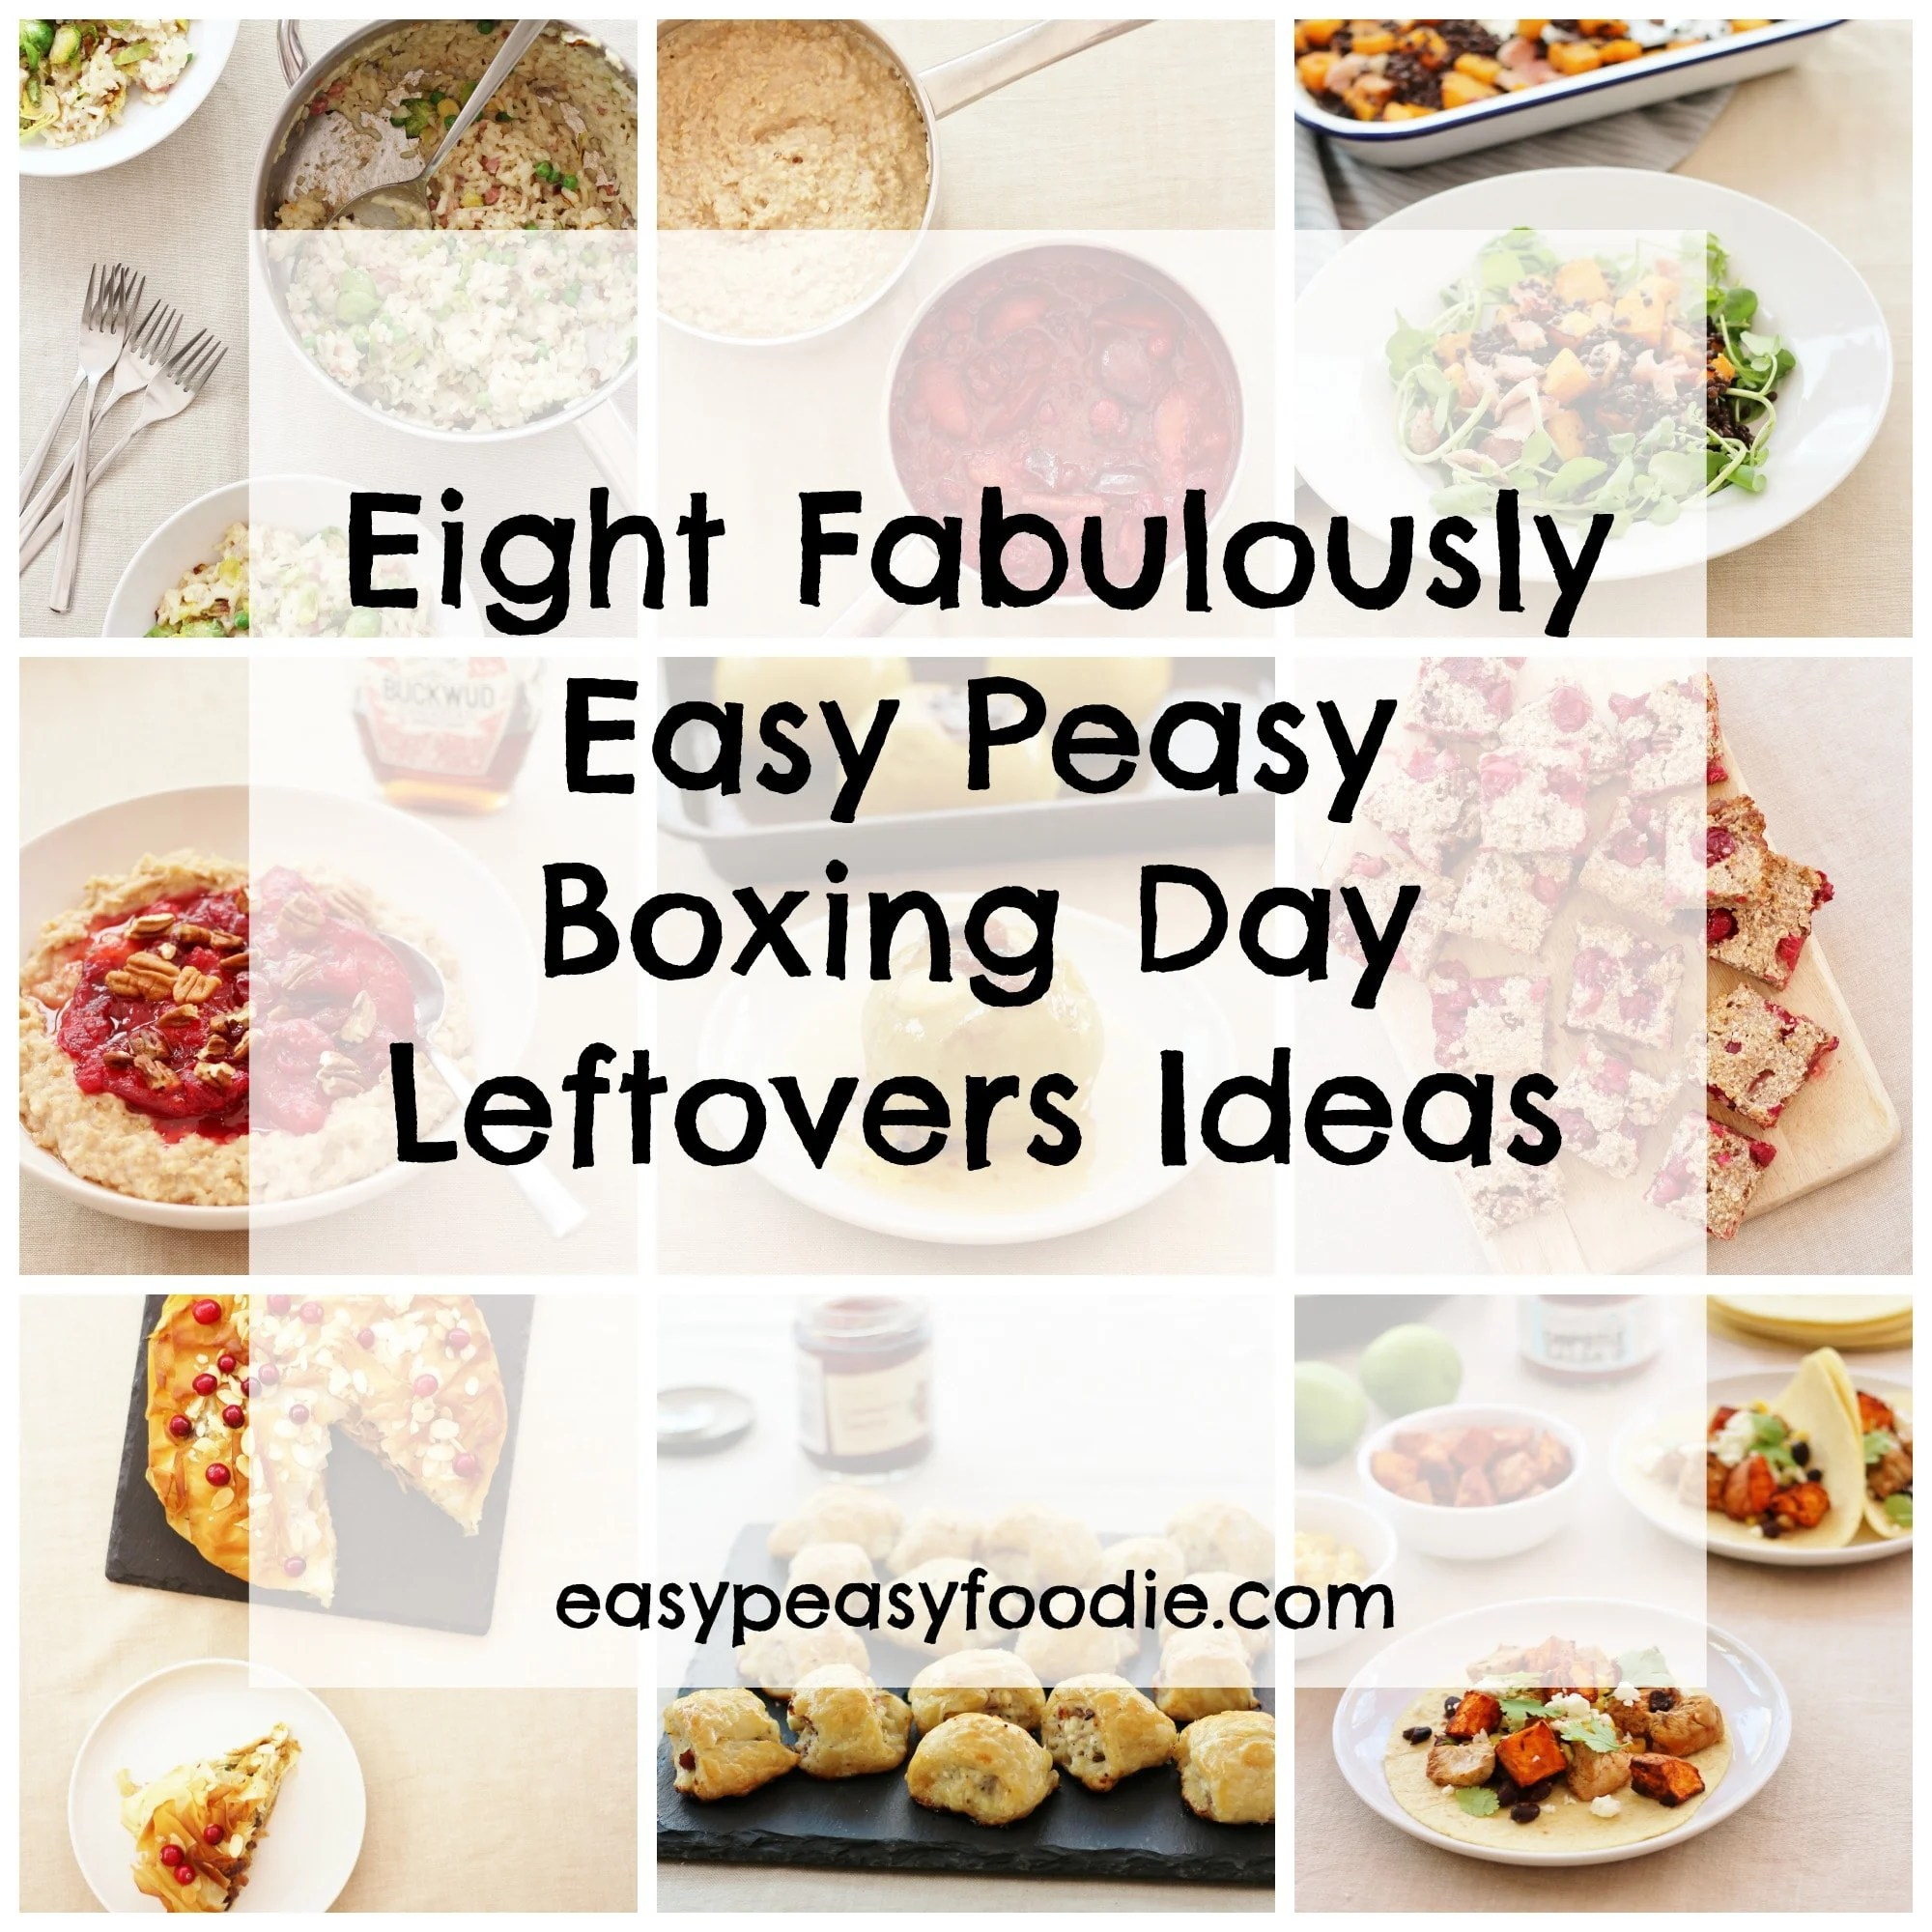 Eight Fabulously Easy Peasy Boxing Day Leftovers Ideas - Easy Peasy ...